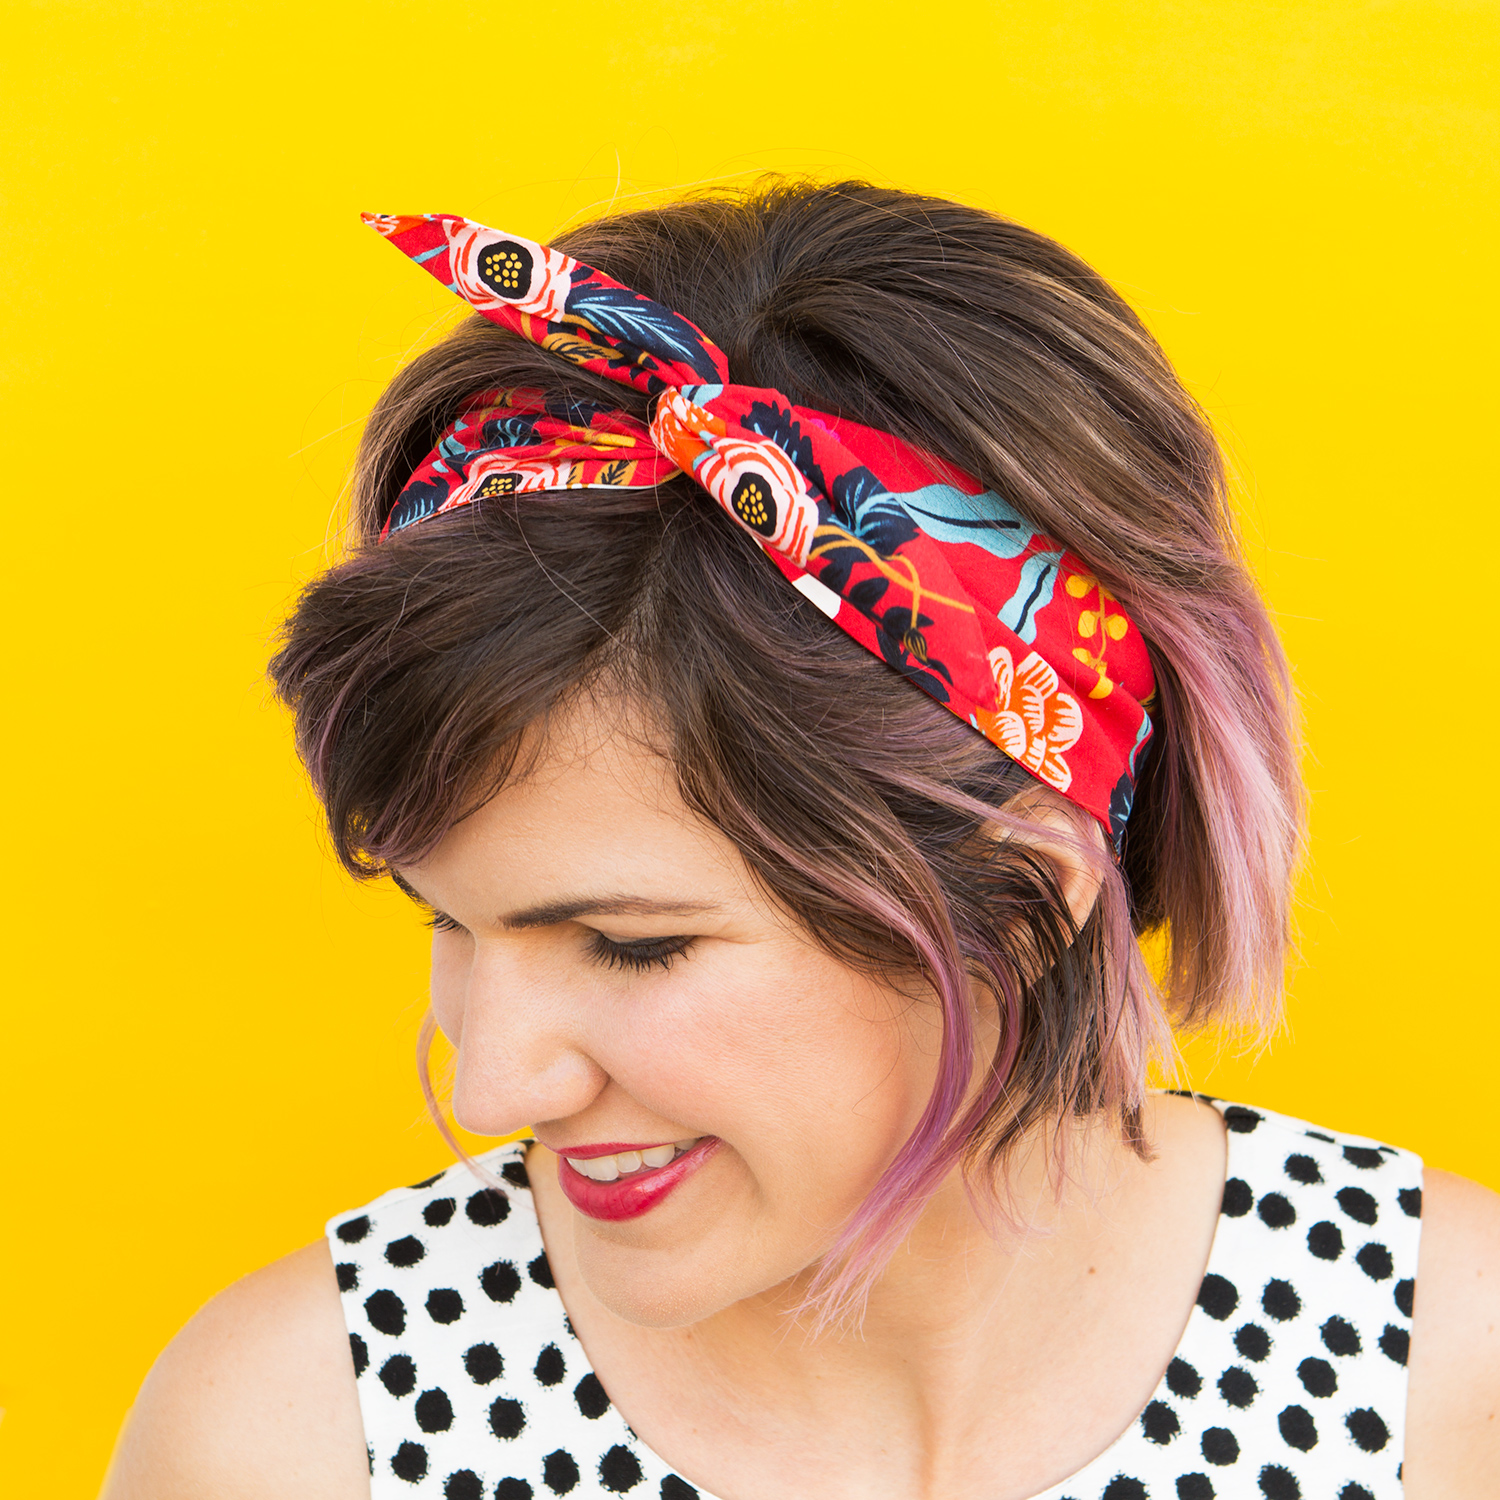 10 EASY No-Sew Headband Projects  Sewing Projects, Sewing Projects for Beginners, Sewing for Beginners, No Sew Projects, Sewing, Sewing Patterns #SewingProjects #SewingProjectsforBeginners #NoSewProjects #Sewing